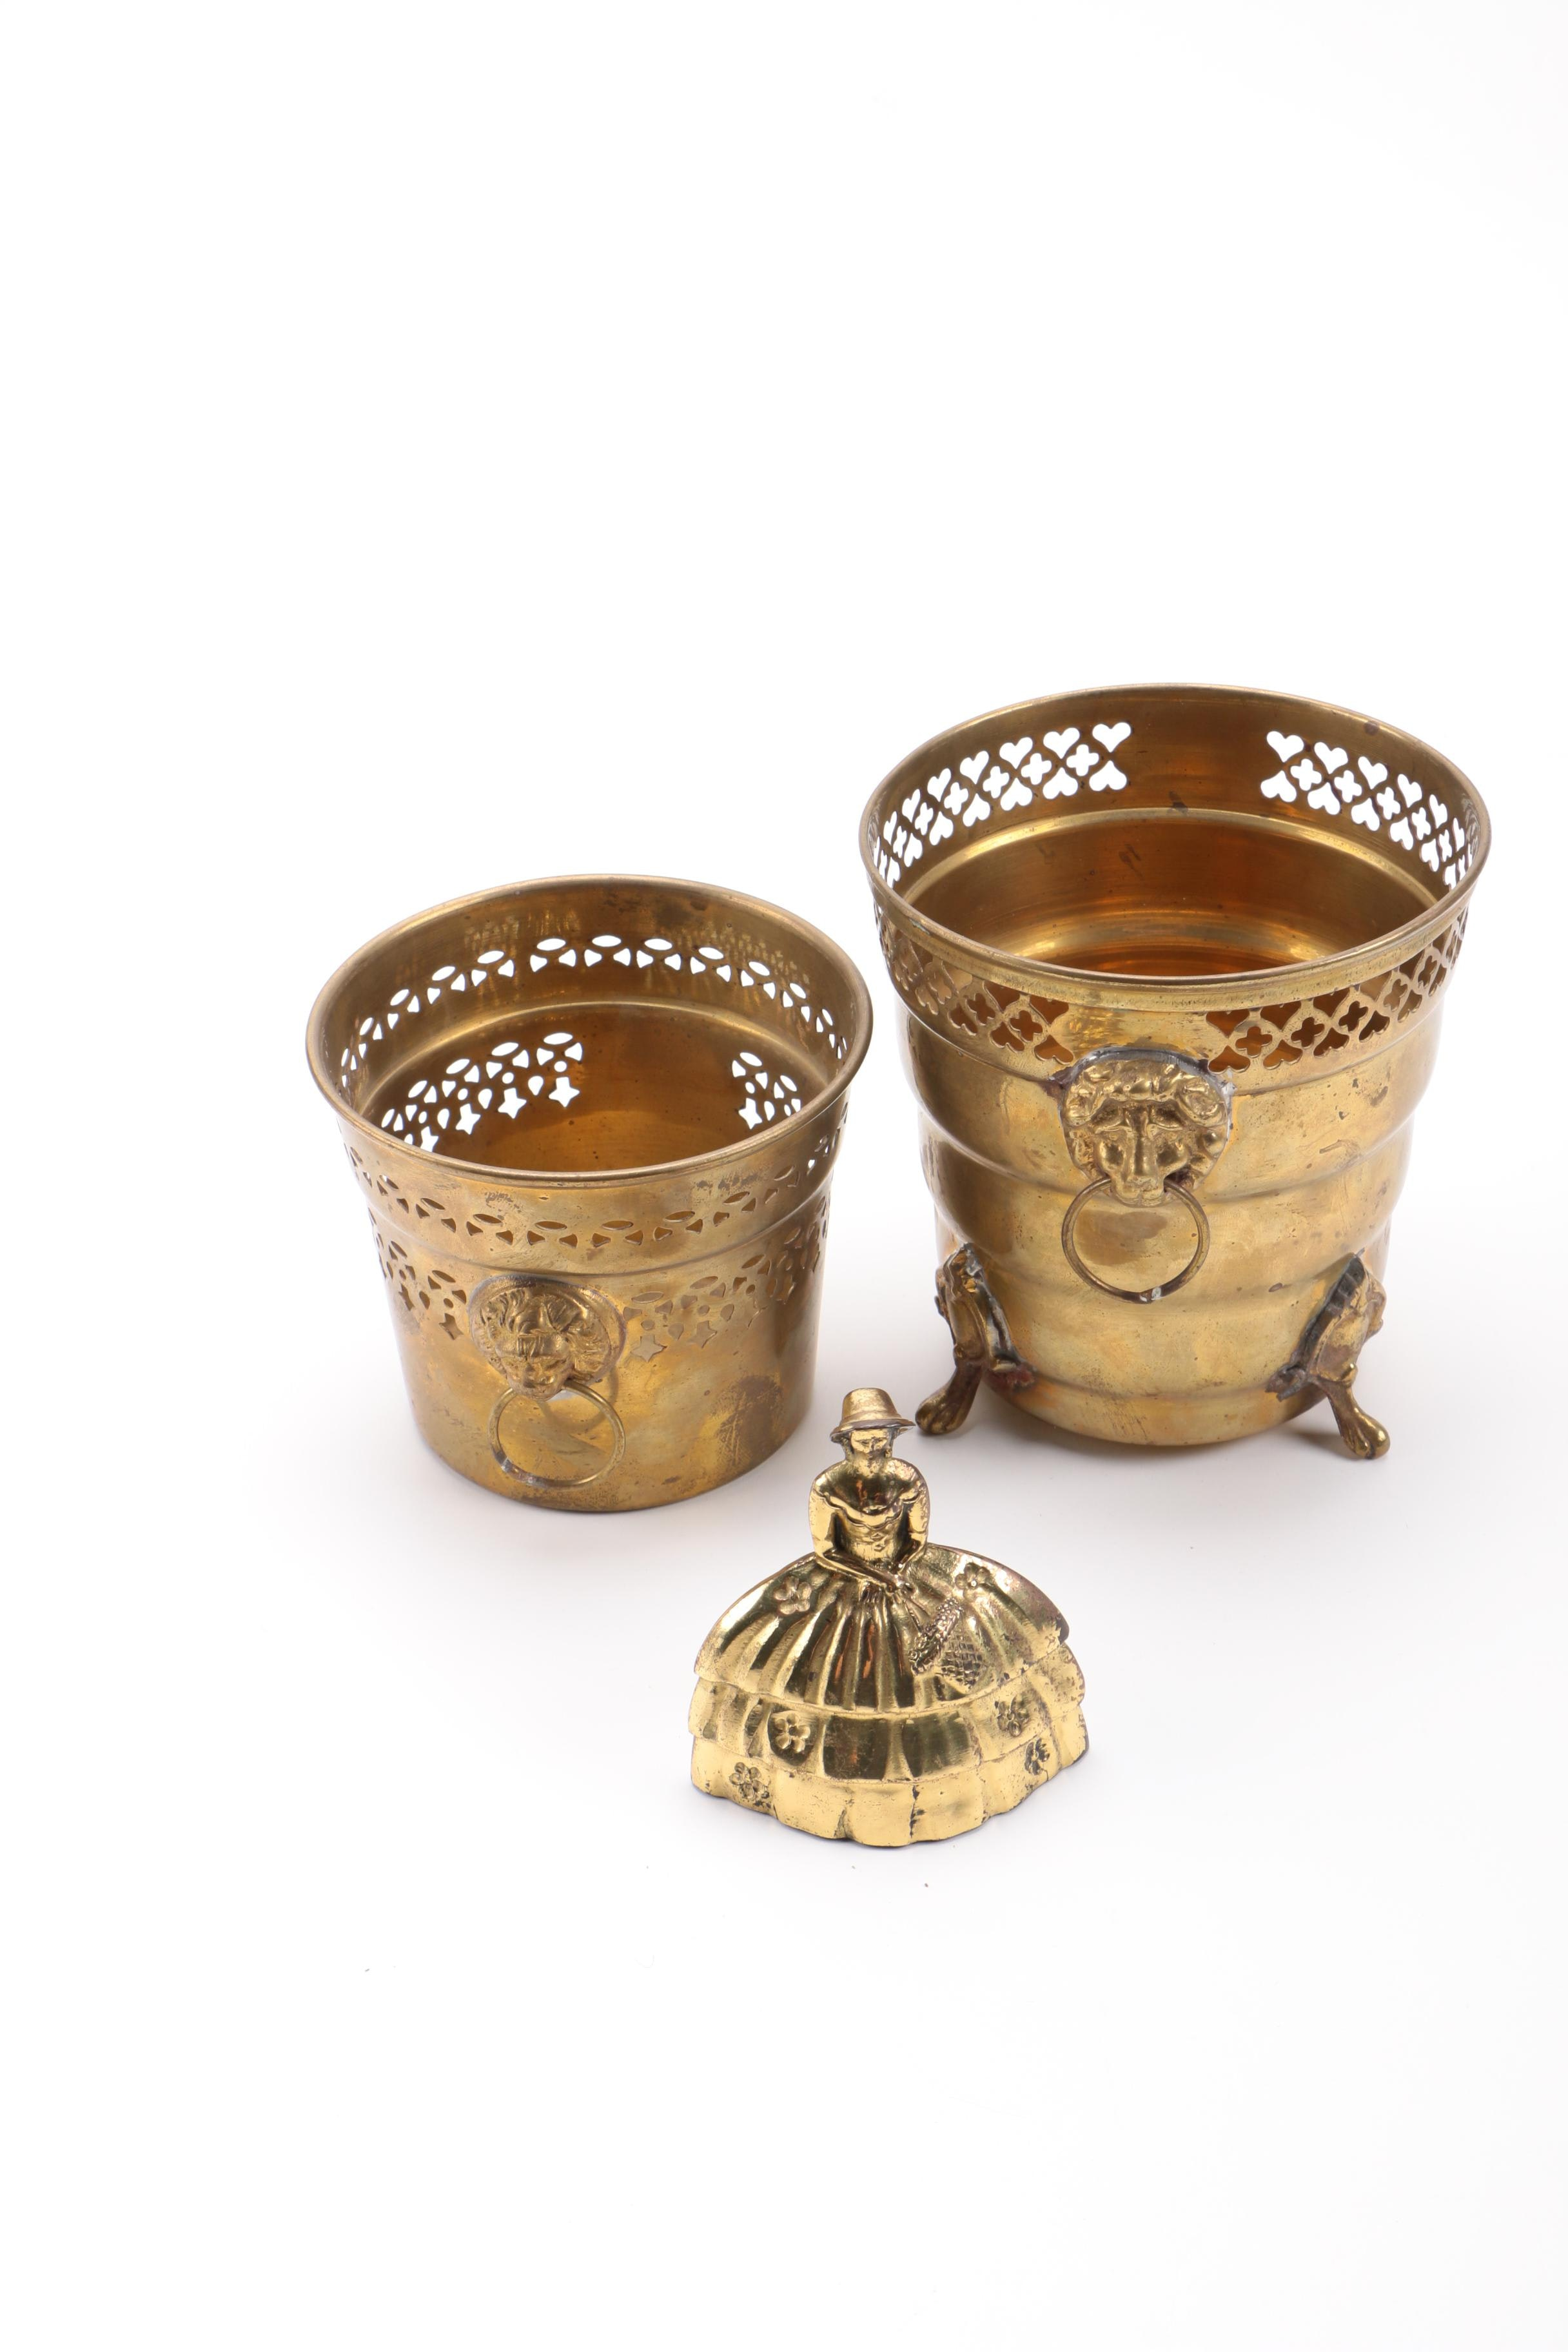 Pair of Brass Containers and Brass Woman-Shaped Bell